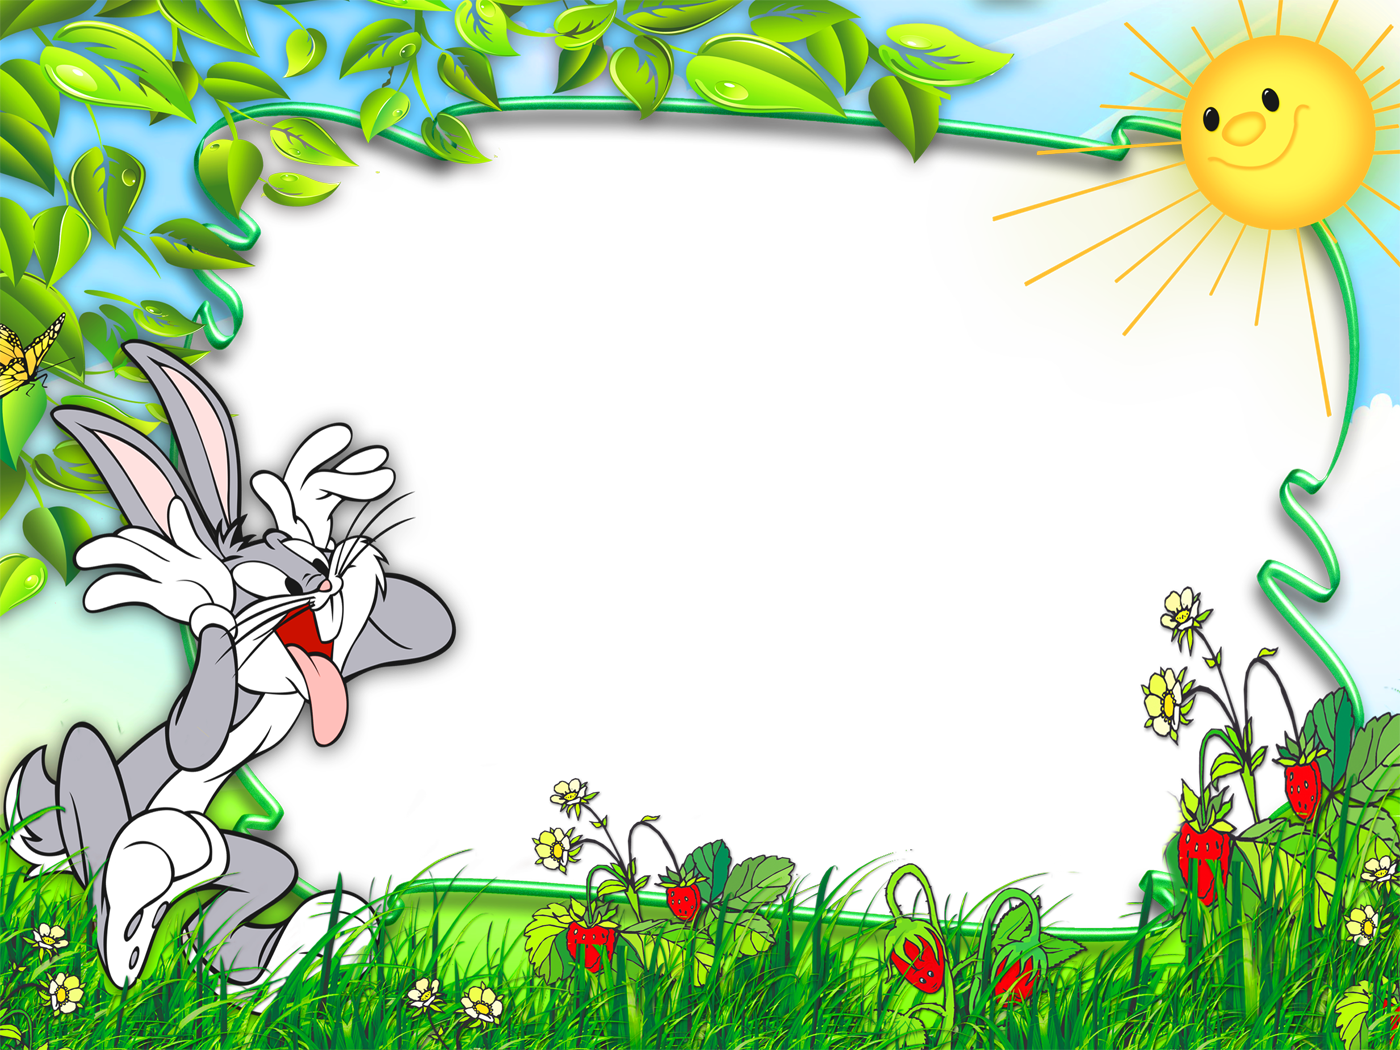 Jungle clipart nature frame. Funny bunny cute kids